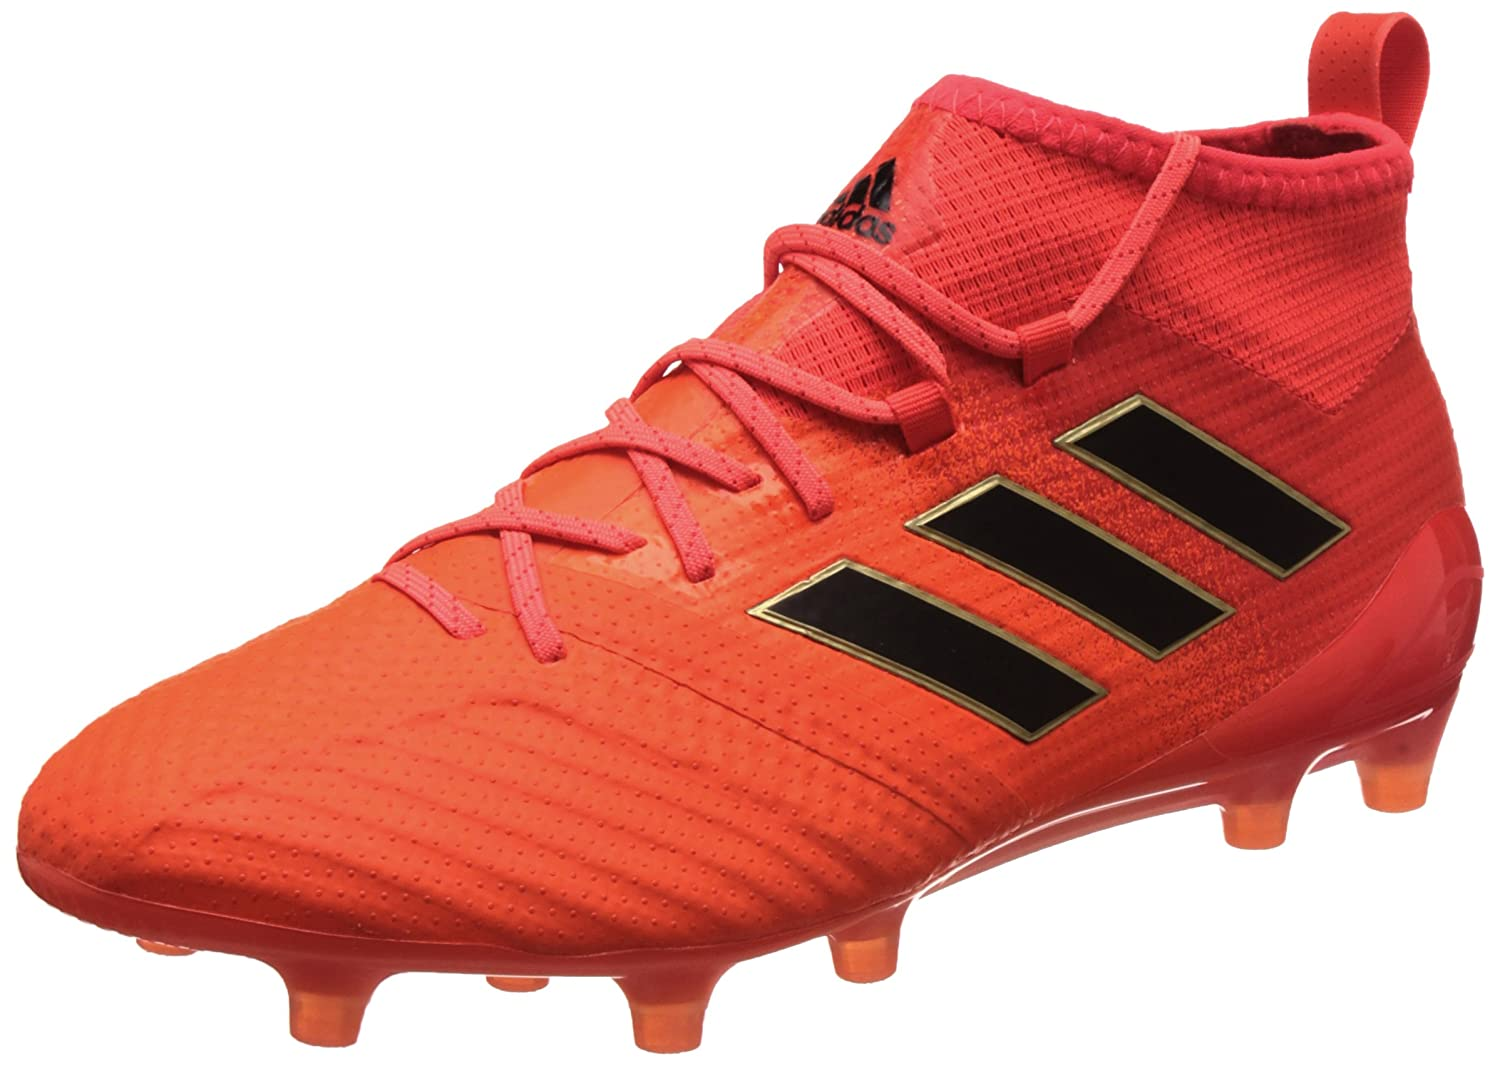 half off 62f7b e81a2 adidas Ace 17.1 FG Mens Firm Ground Soccer Boots/Cleats